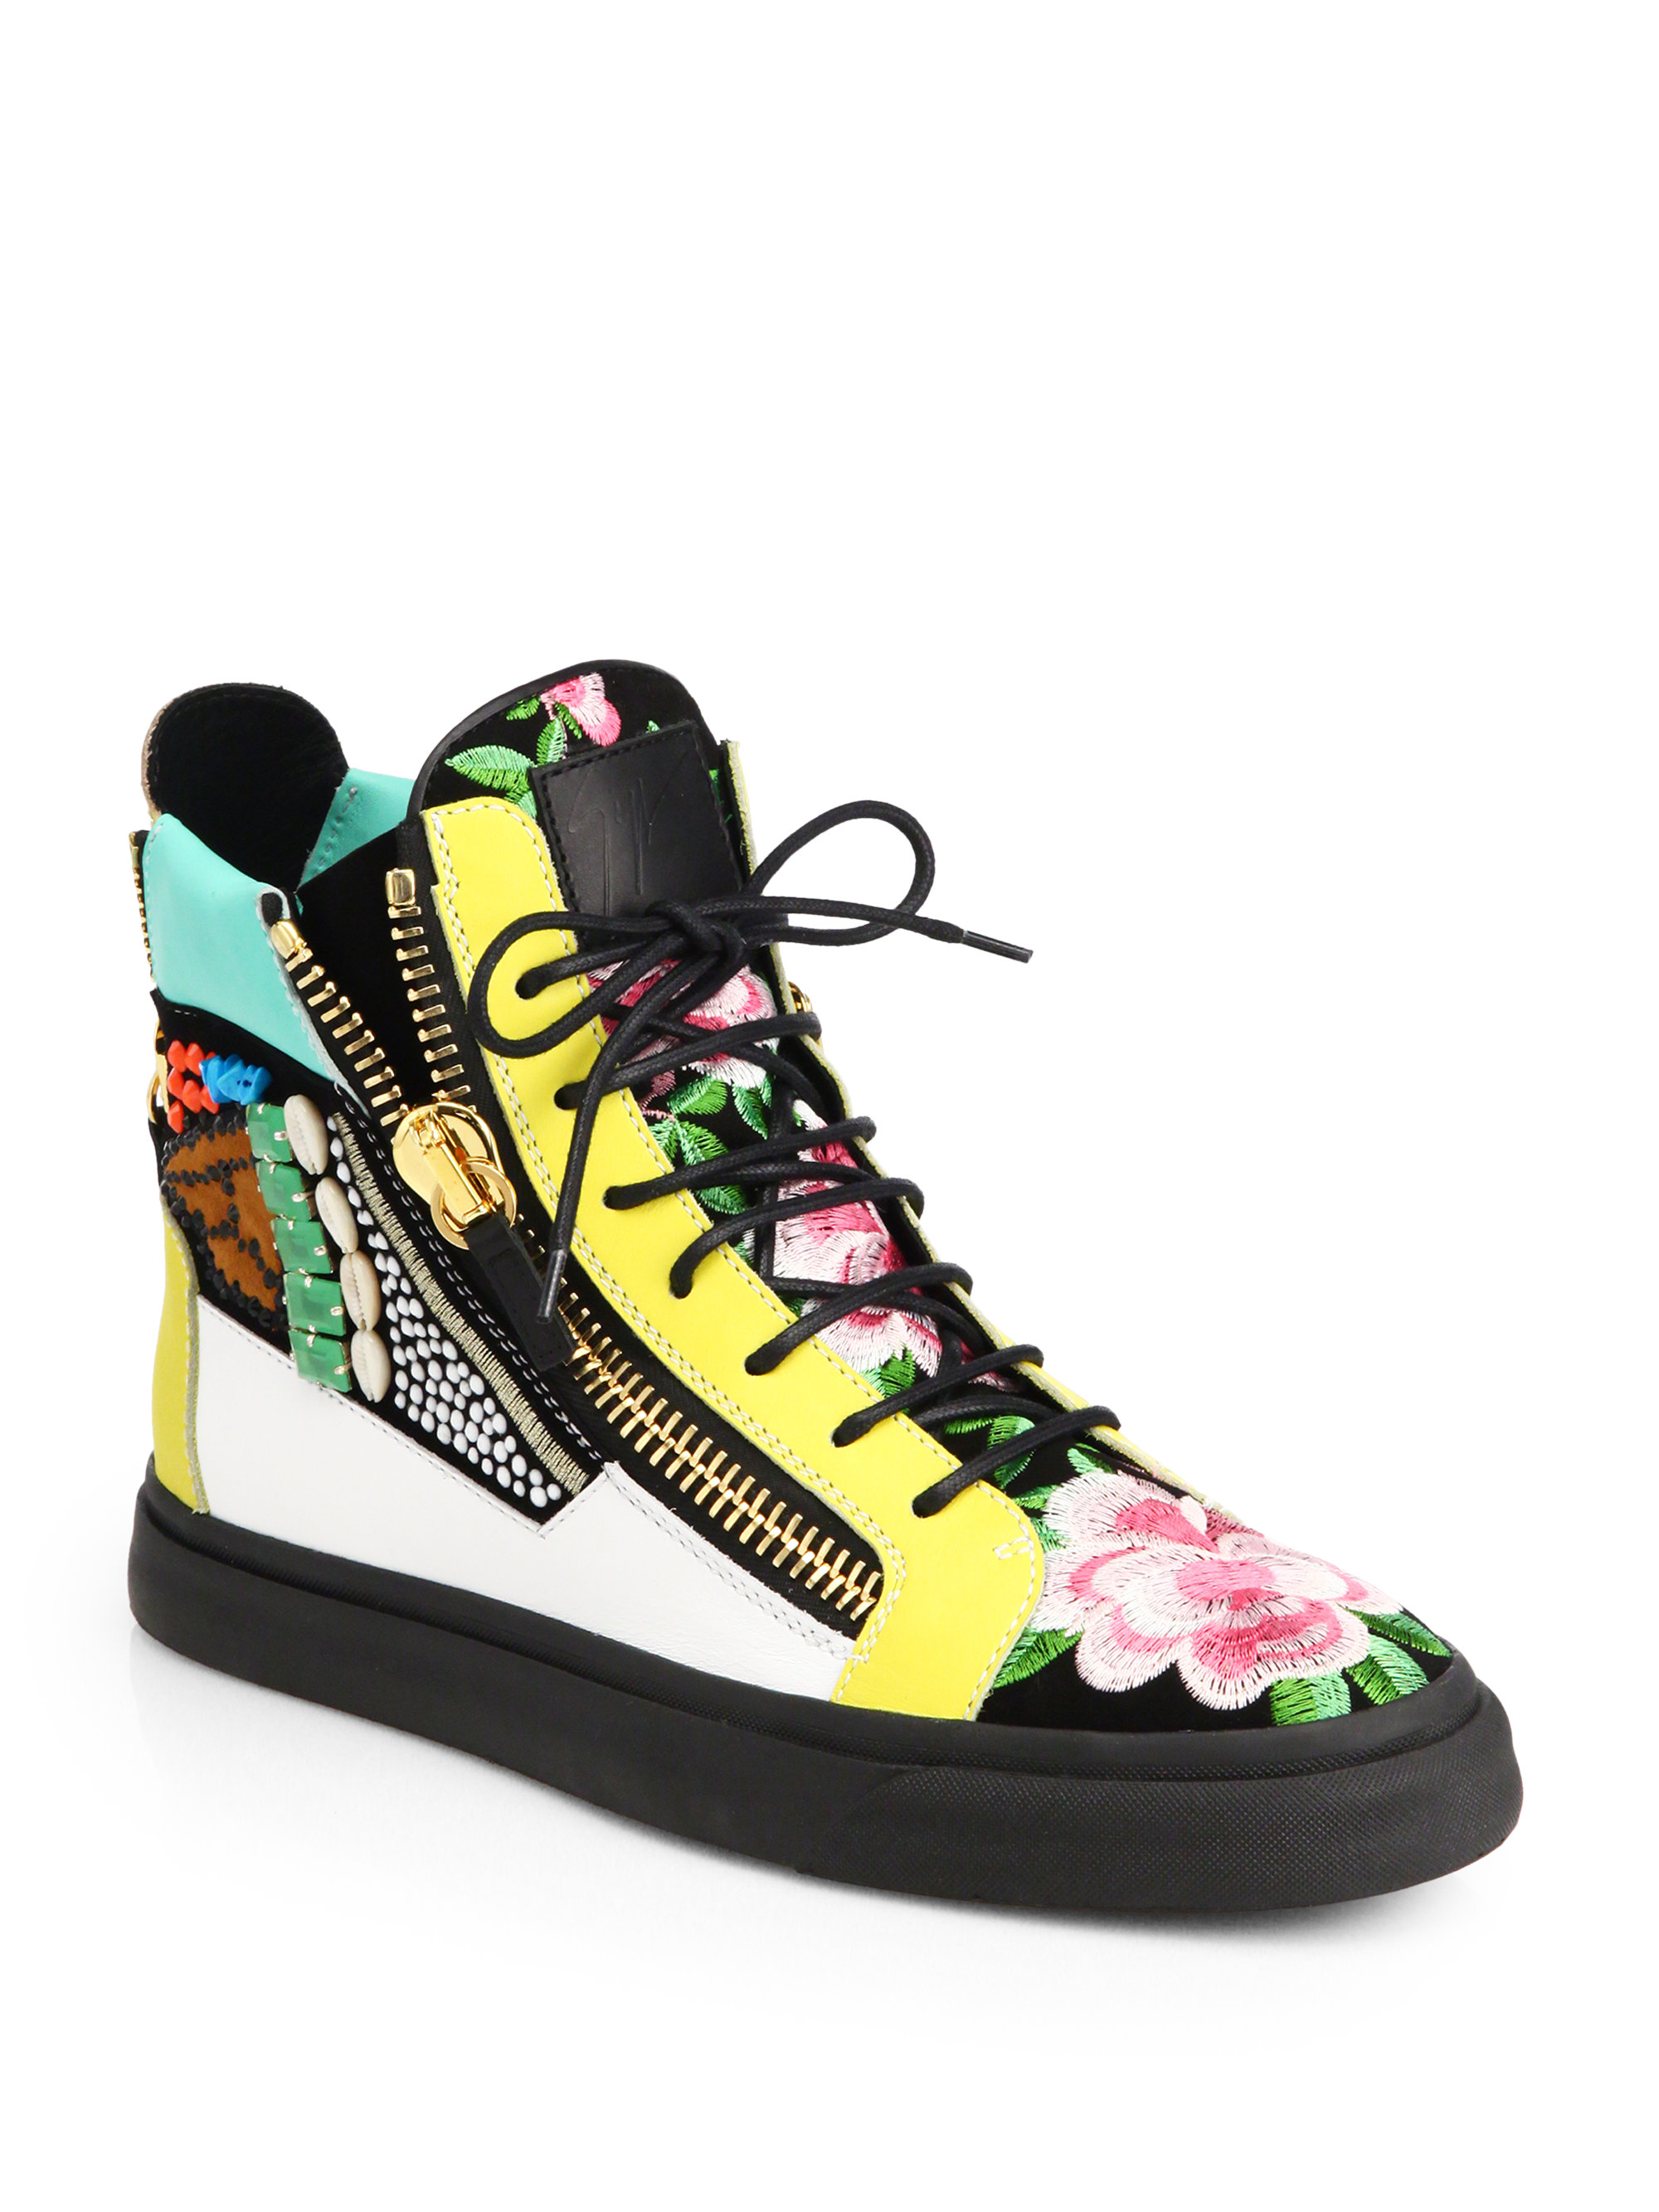 015aa9db23b45 Giuseppe Zanotti Floral Mixed Media High-Top Sneakers for Men - Lyst